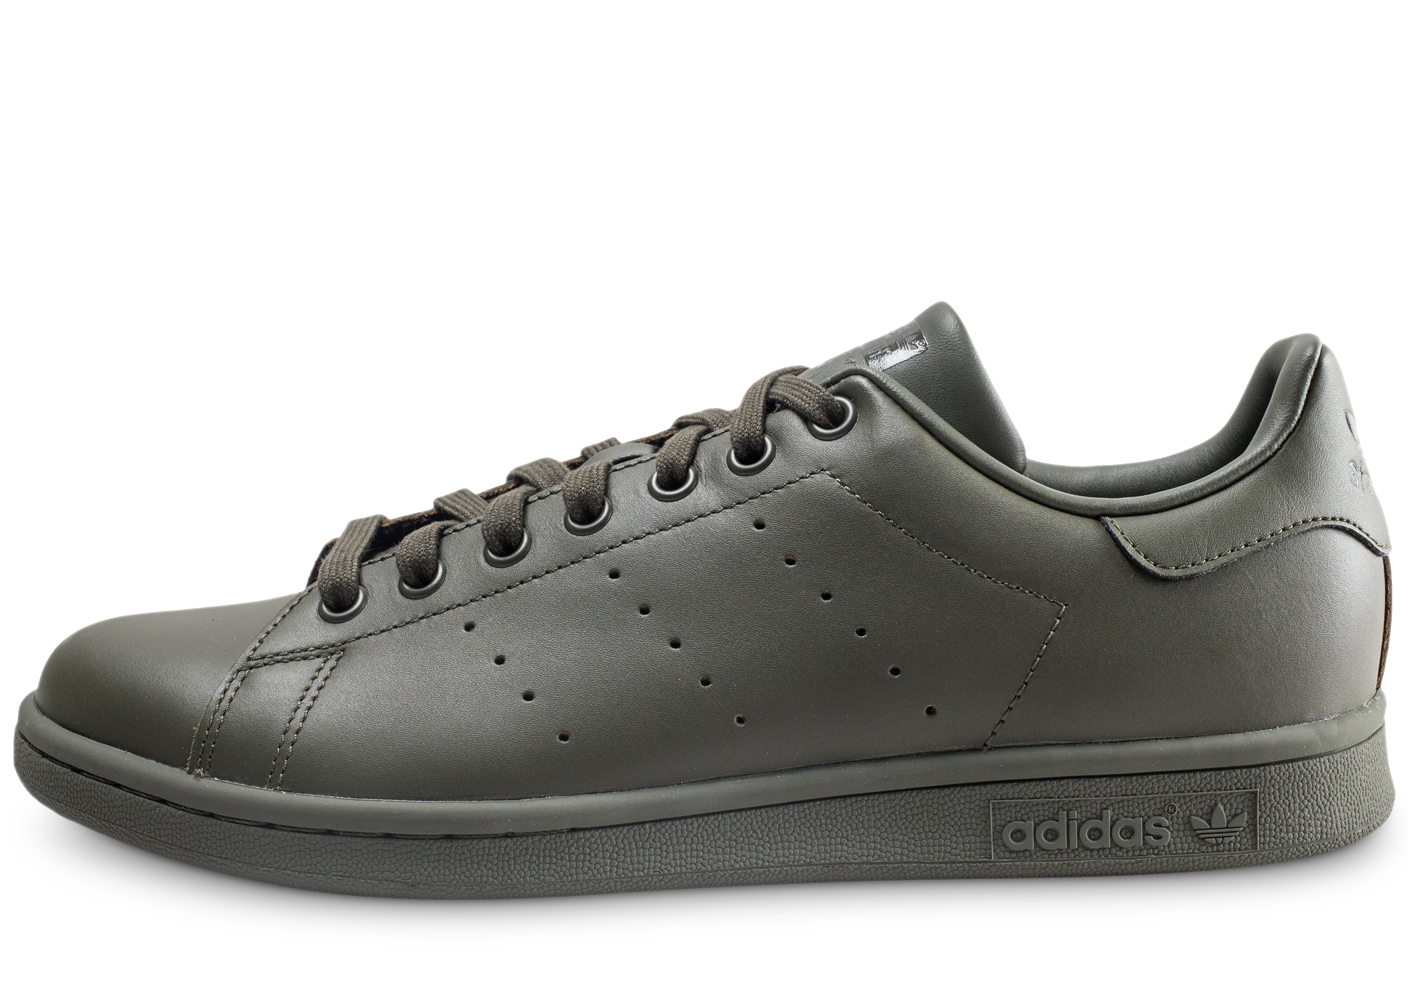 best service ed28b 96de0 Adidas homme stan smith kaki baskets